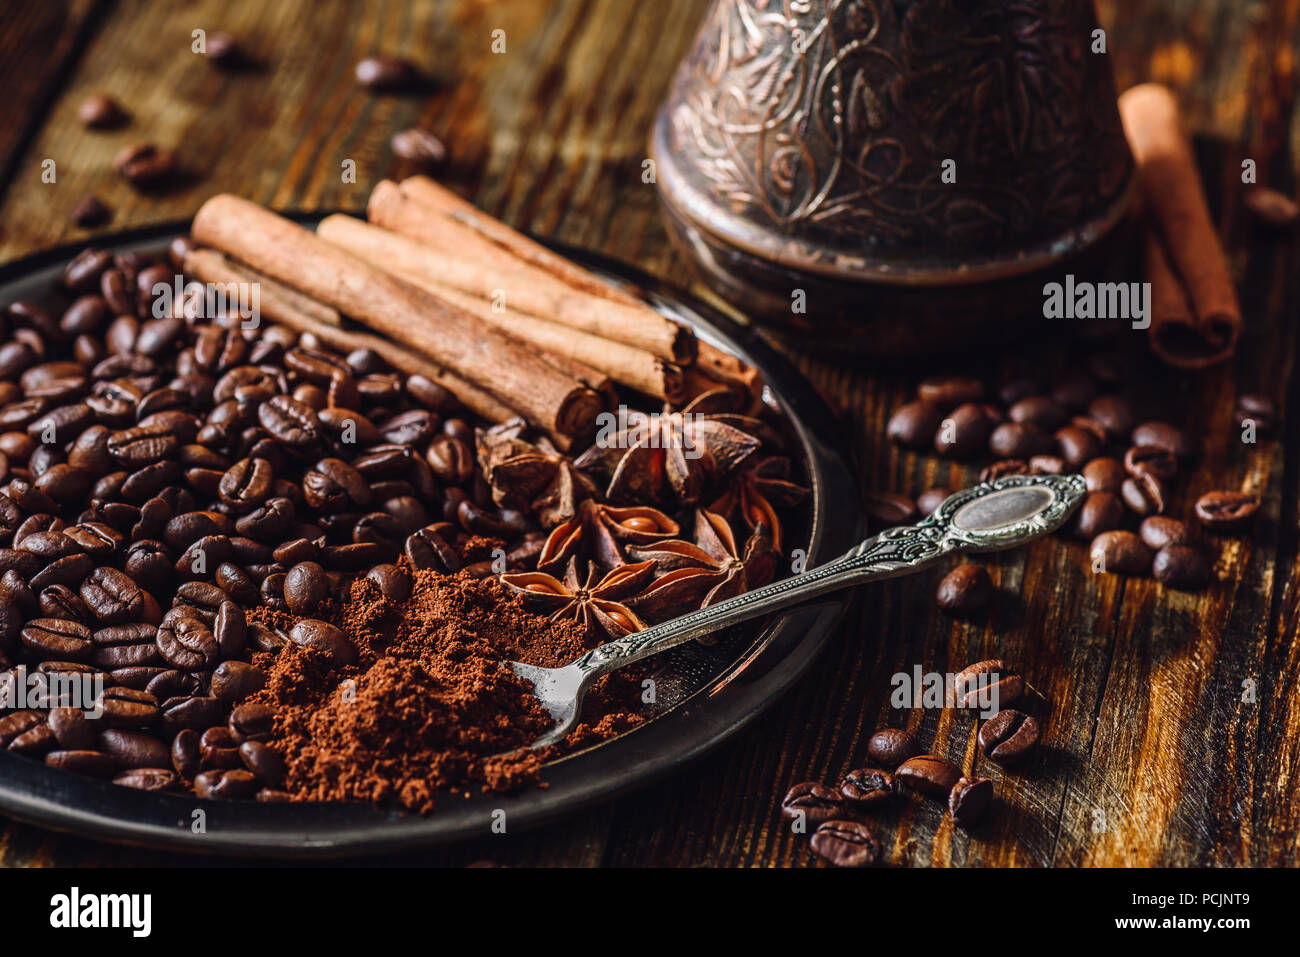 Coffee Beans with Spooonful of Ground Coffee, Cinnamon Sticks and Chinese Star Anise on Metal Plate. Beans Scattered on Wooden Table and Cezve on Back - Stock Image